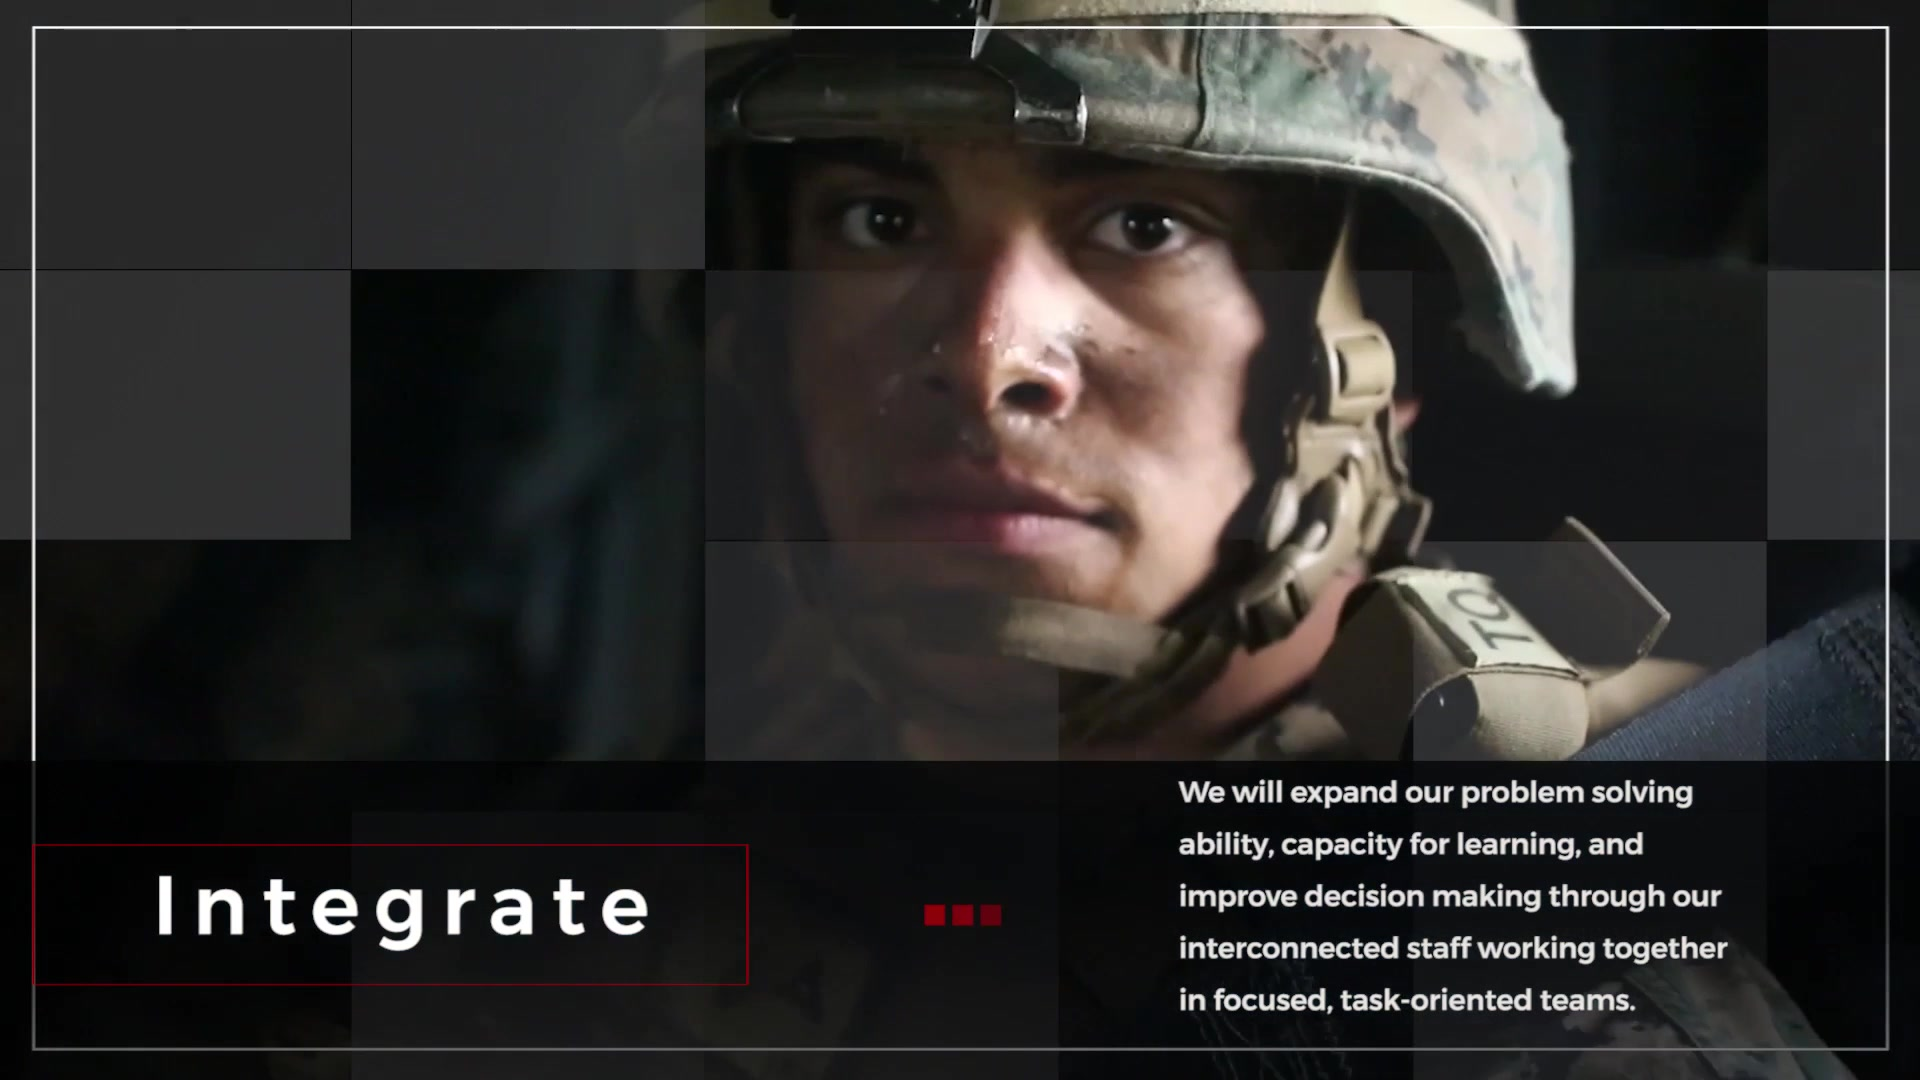 This video summarizes the strategic direction for Marine Corps Base Hawaii (MCBH). MCBH provides forward-based, sustainable, and secure training and operational support, facilities, and services to enable Operational Forces to accomplish their mission. (Official U.S. Marine Corps video by Chief Warrant Officer 2 Michael Kropiewnicki/Released)